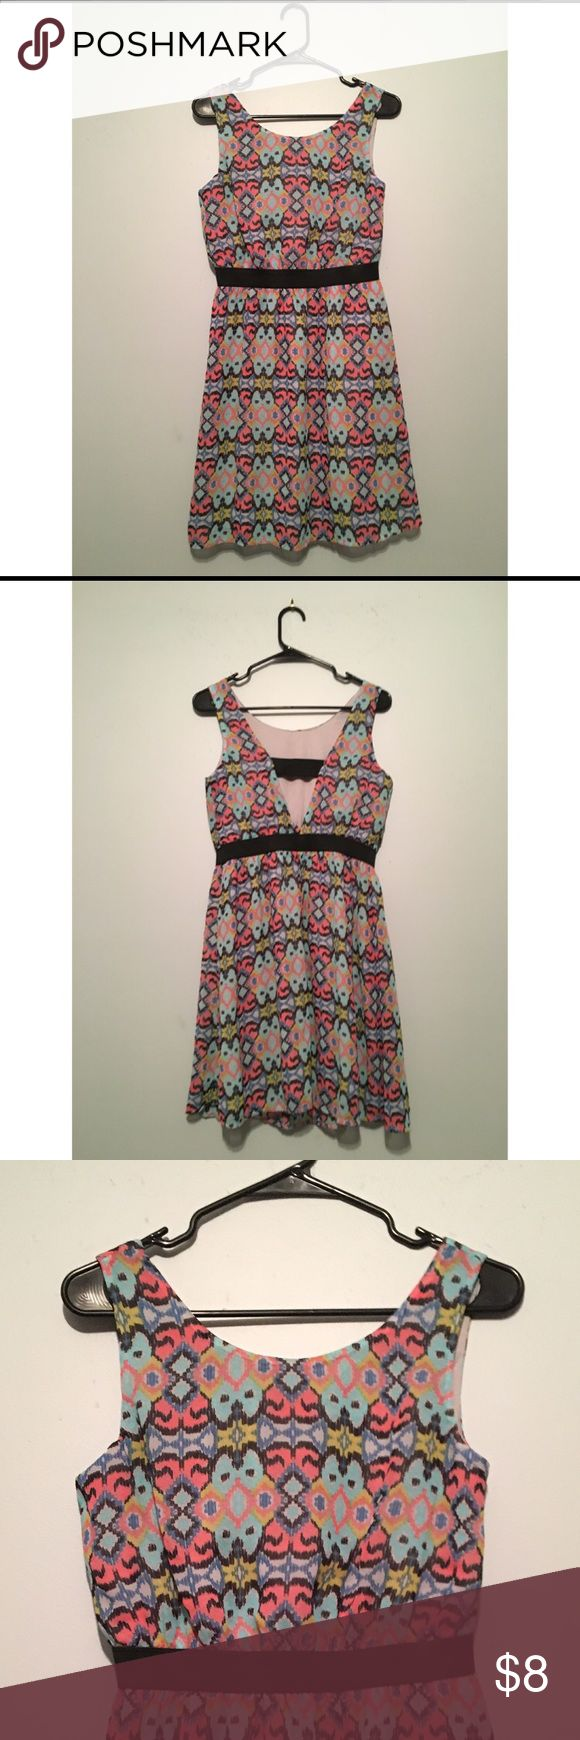 A Summer BBQ dress. A cute mini dress. Multiple Colors. New! Xhilaration Dresses Mini